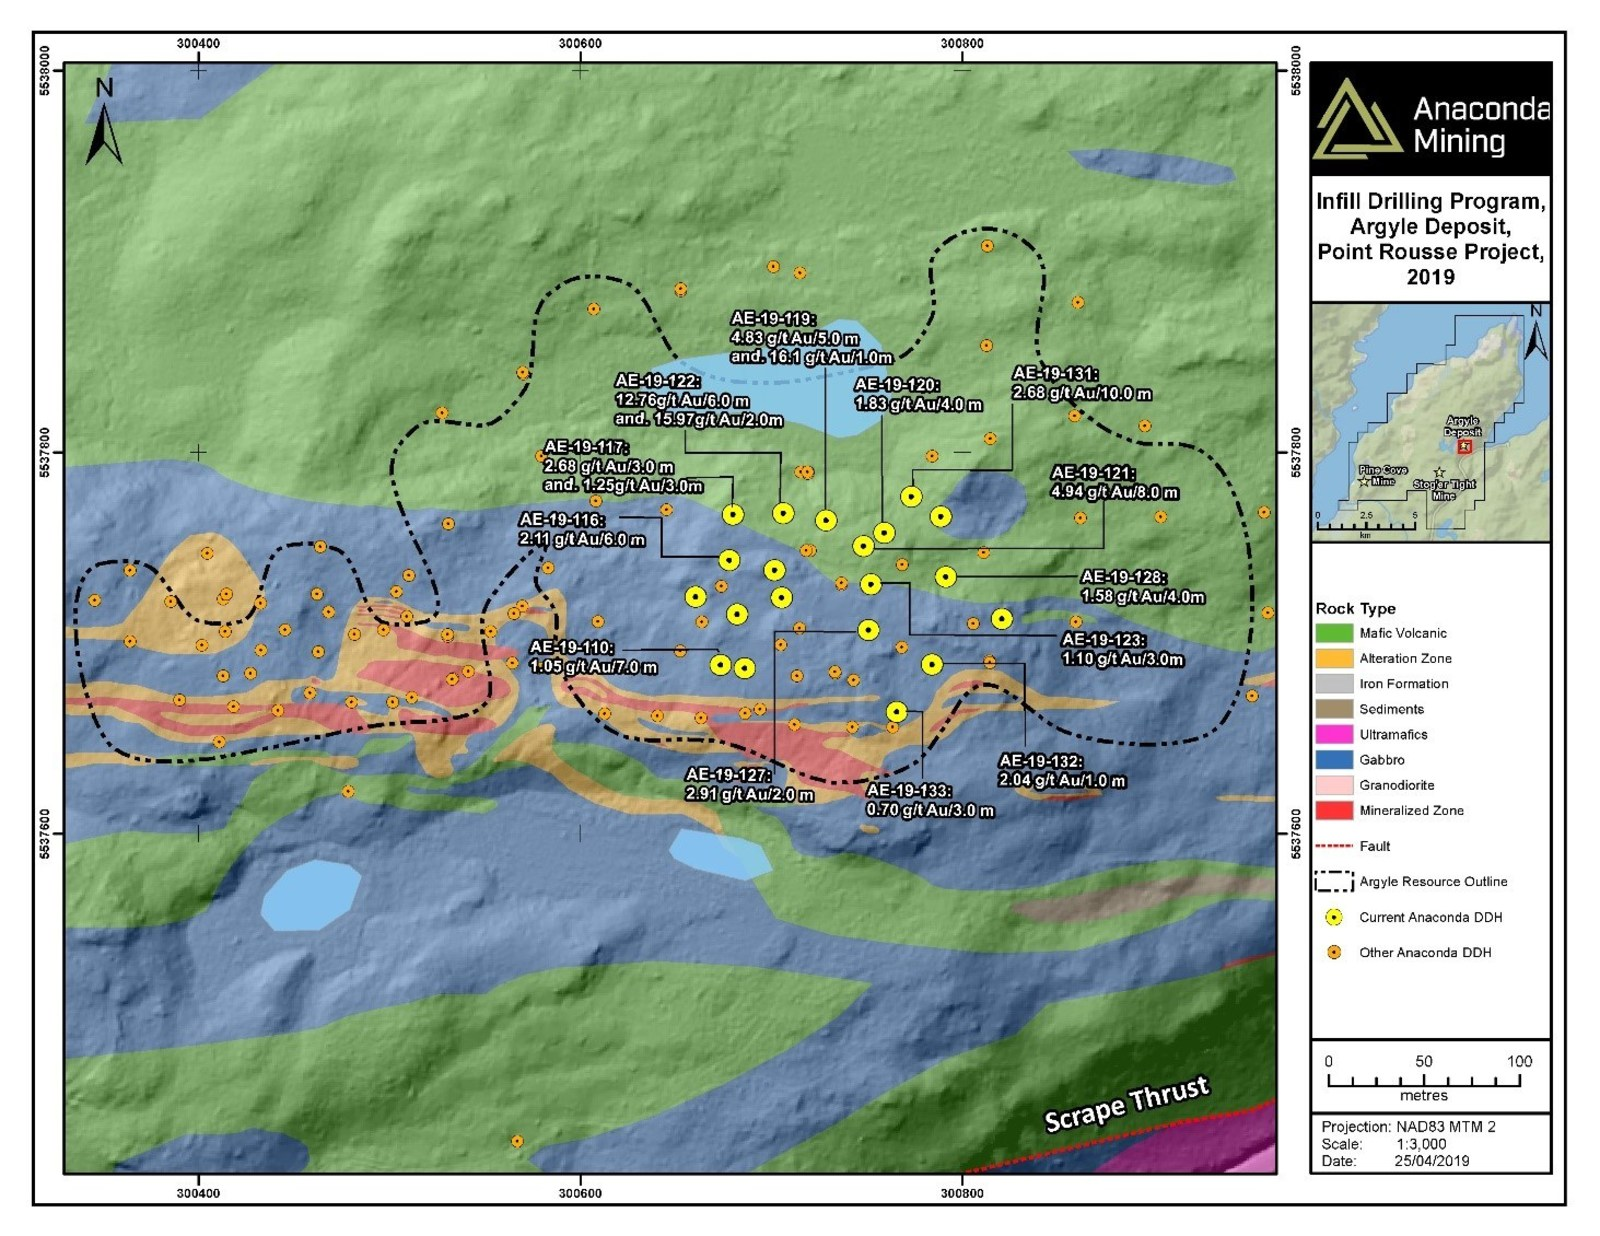 Exhibit A. A map of the Argyle deposit showing the location of recent drill collars and highlighted composited assays.